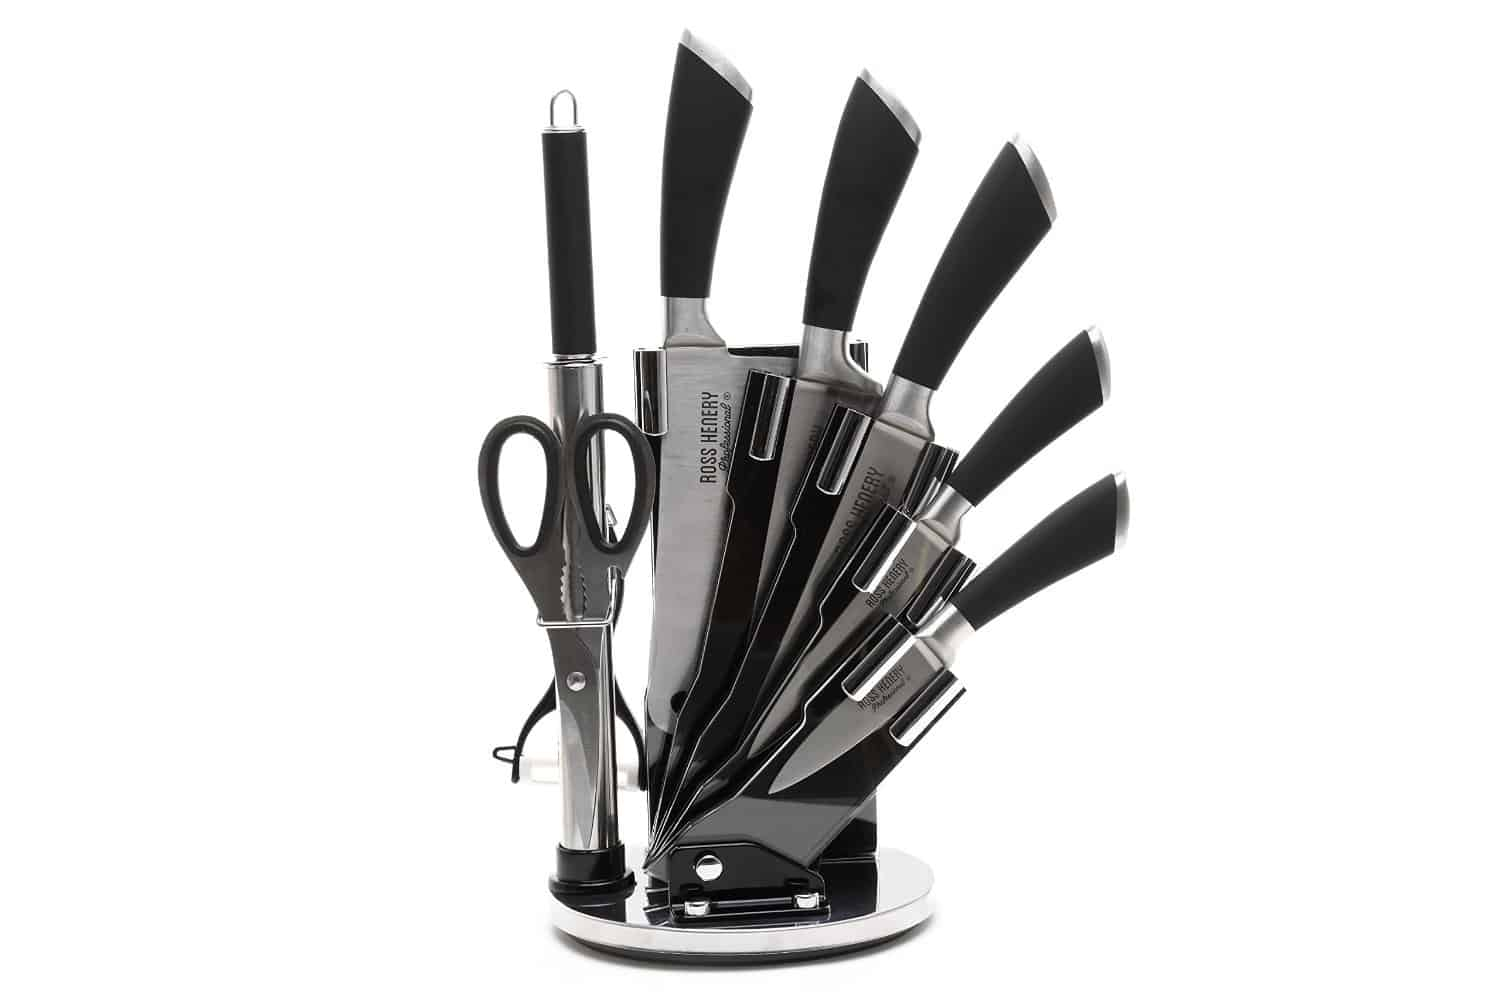 Ross Henery Modern Stainless Steel 8 Piece Kitchen Knife Set Review